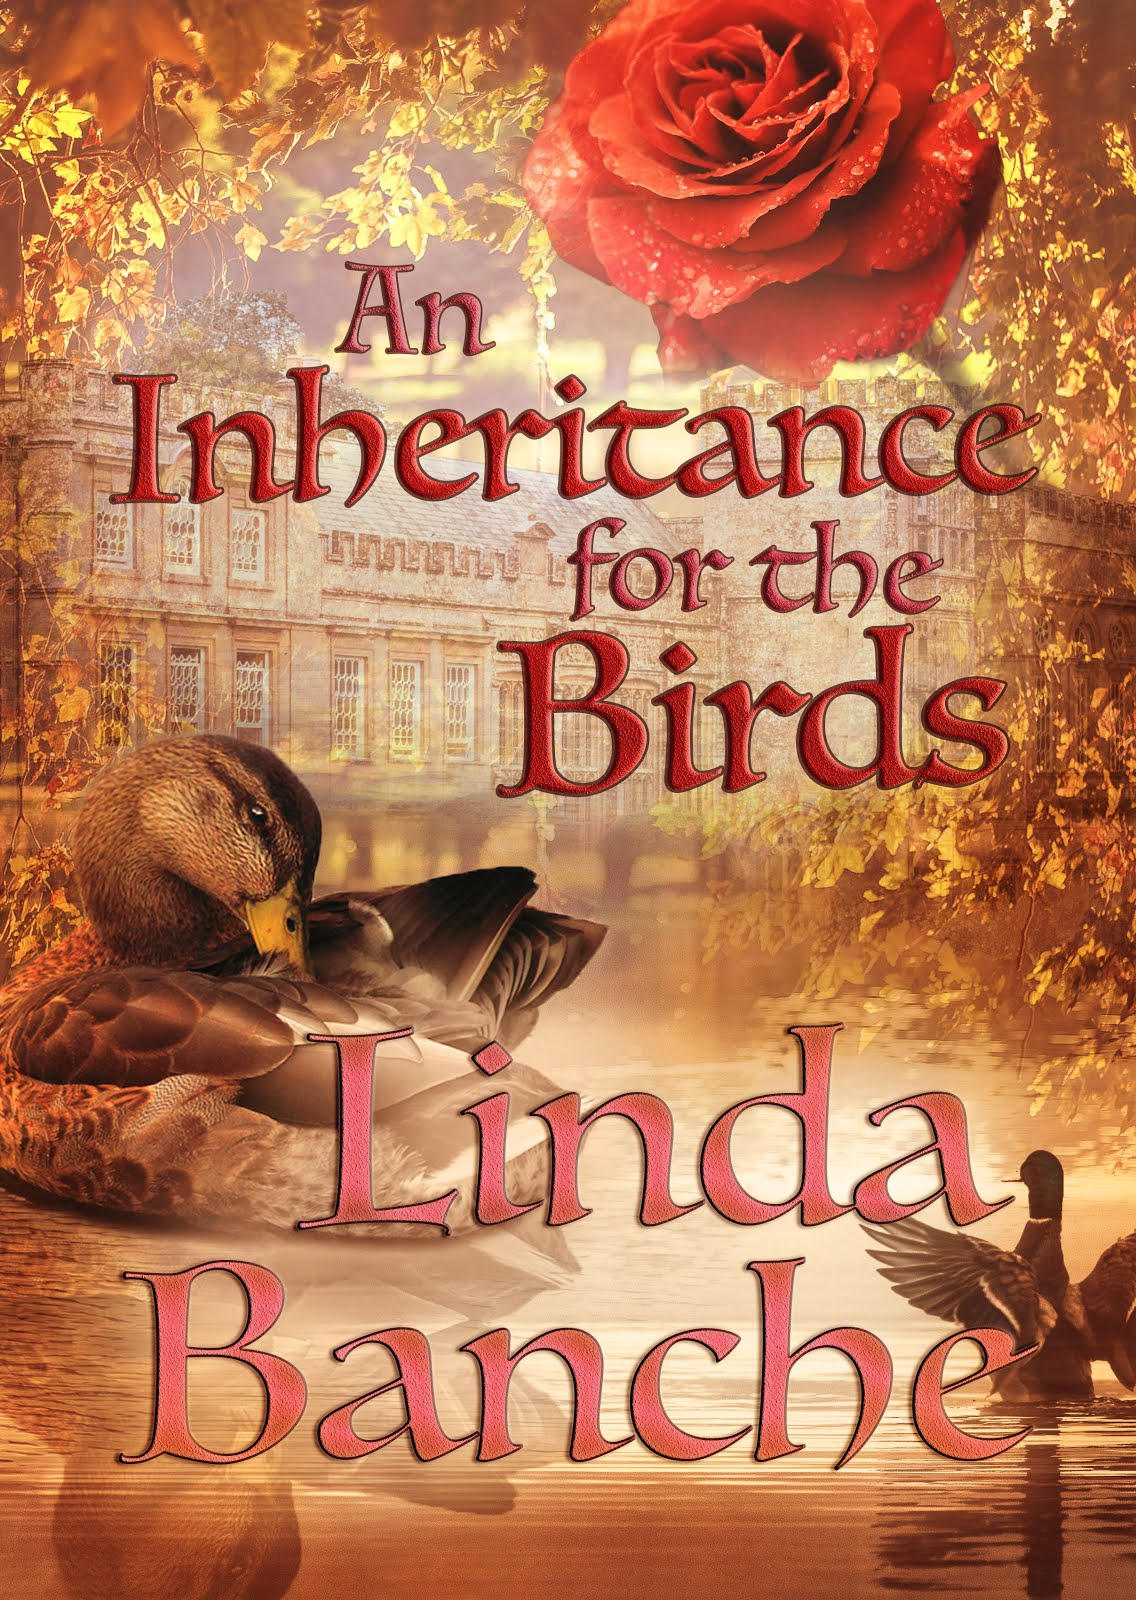 An Inheritance for the Birds